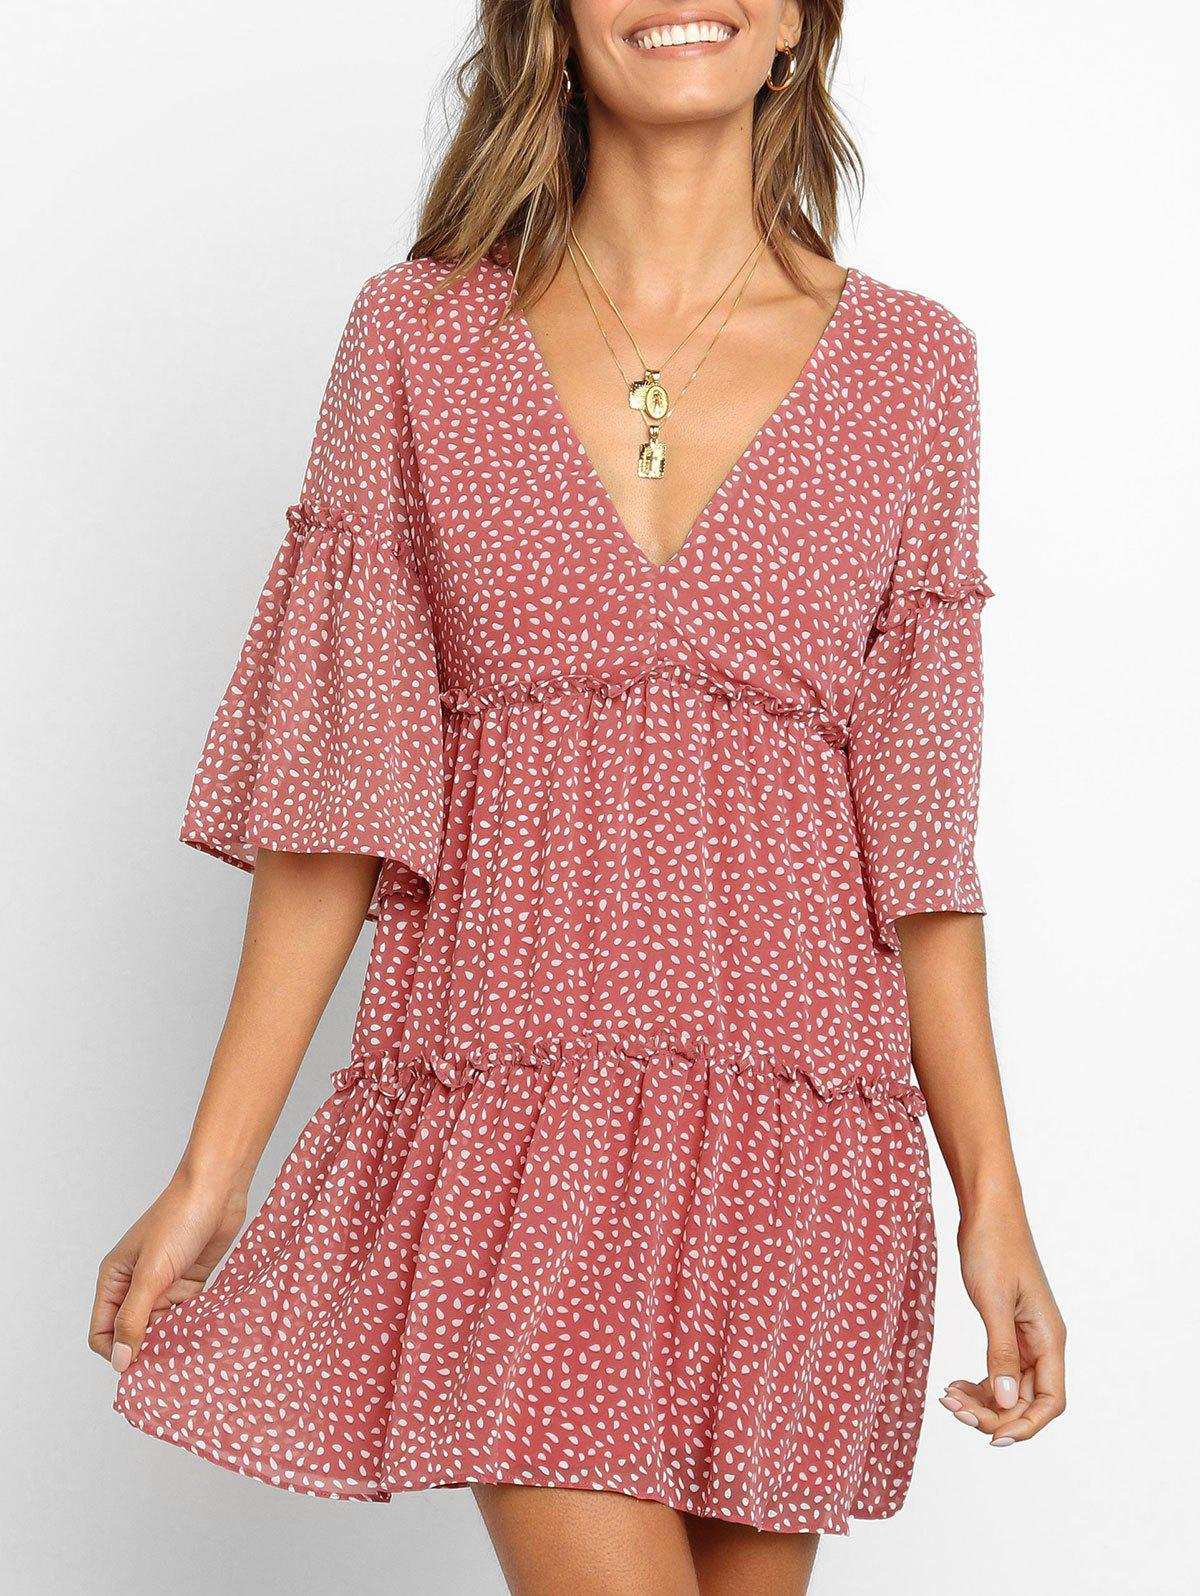 Water Drop Print Ruffle Flare Sleeve Dress - LIGHT CORAL M